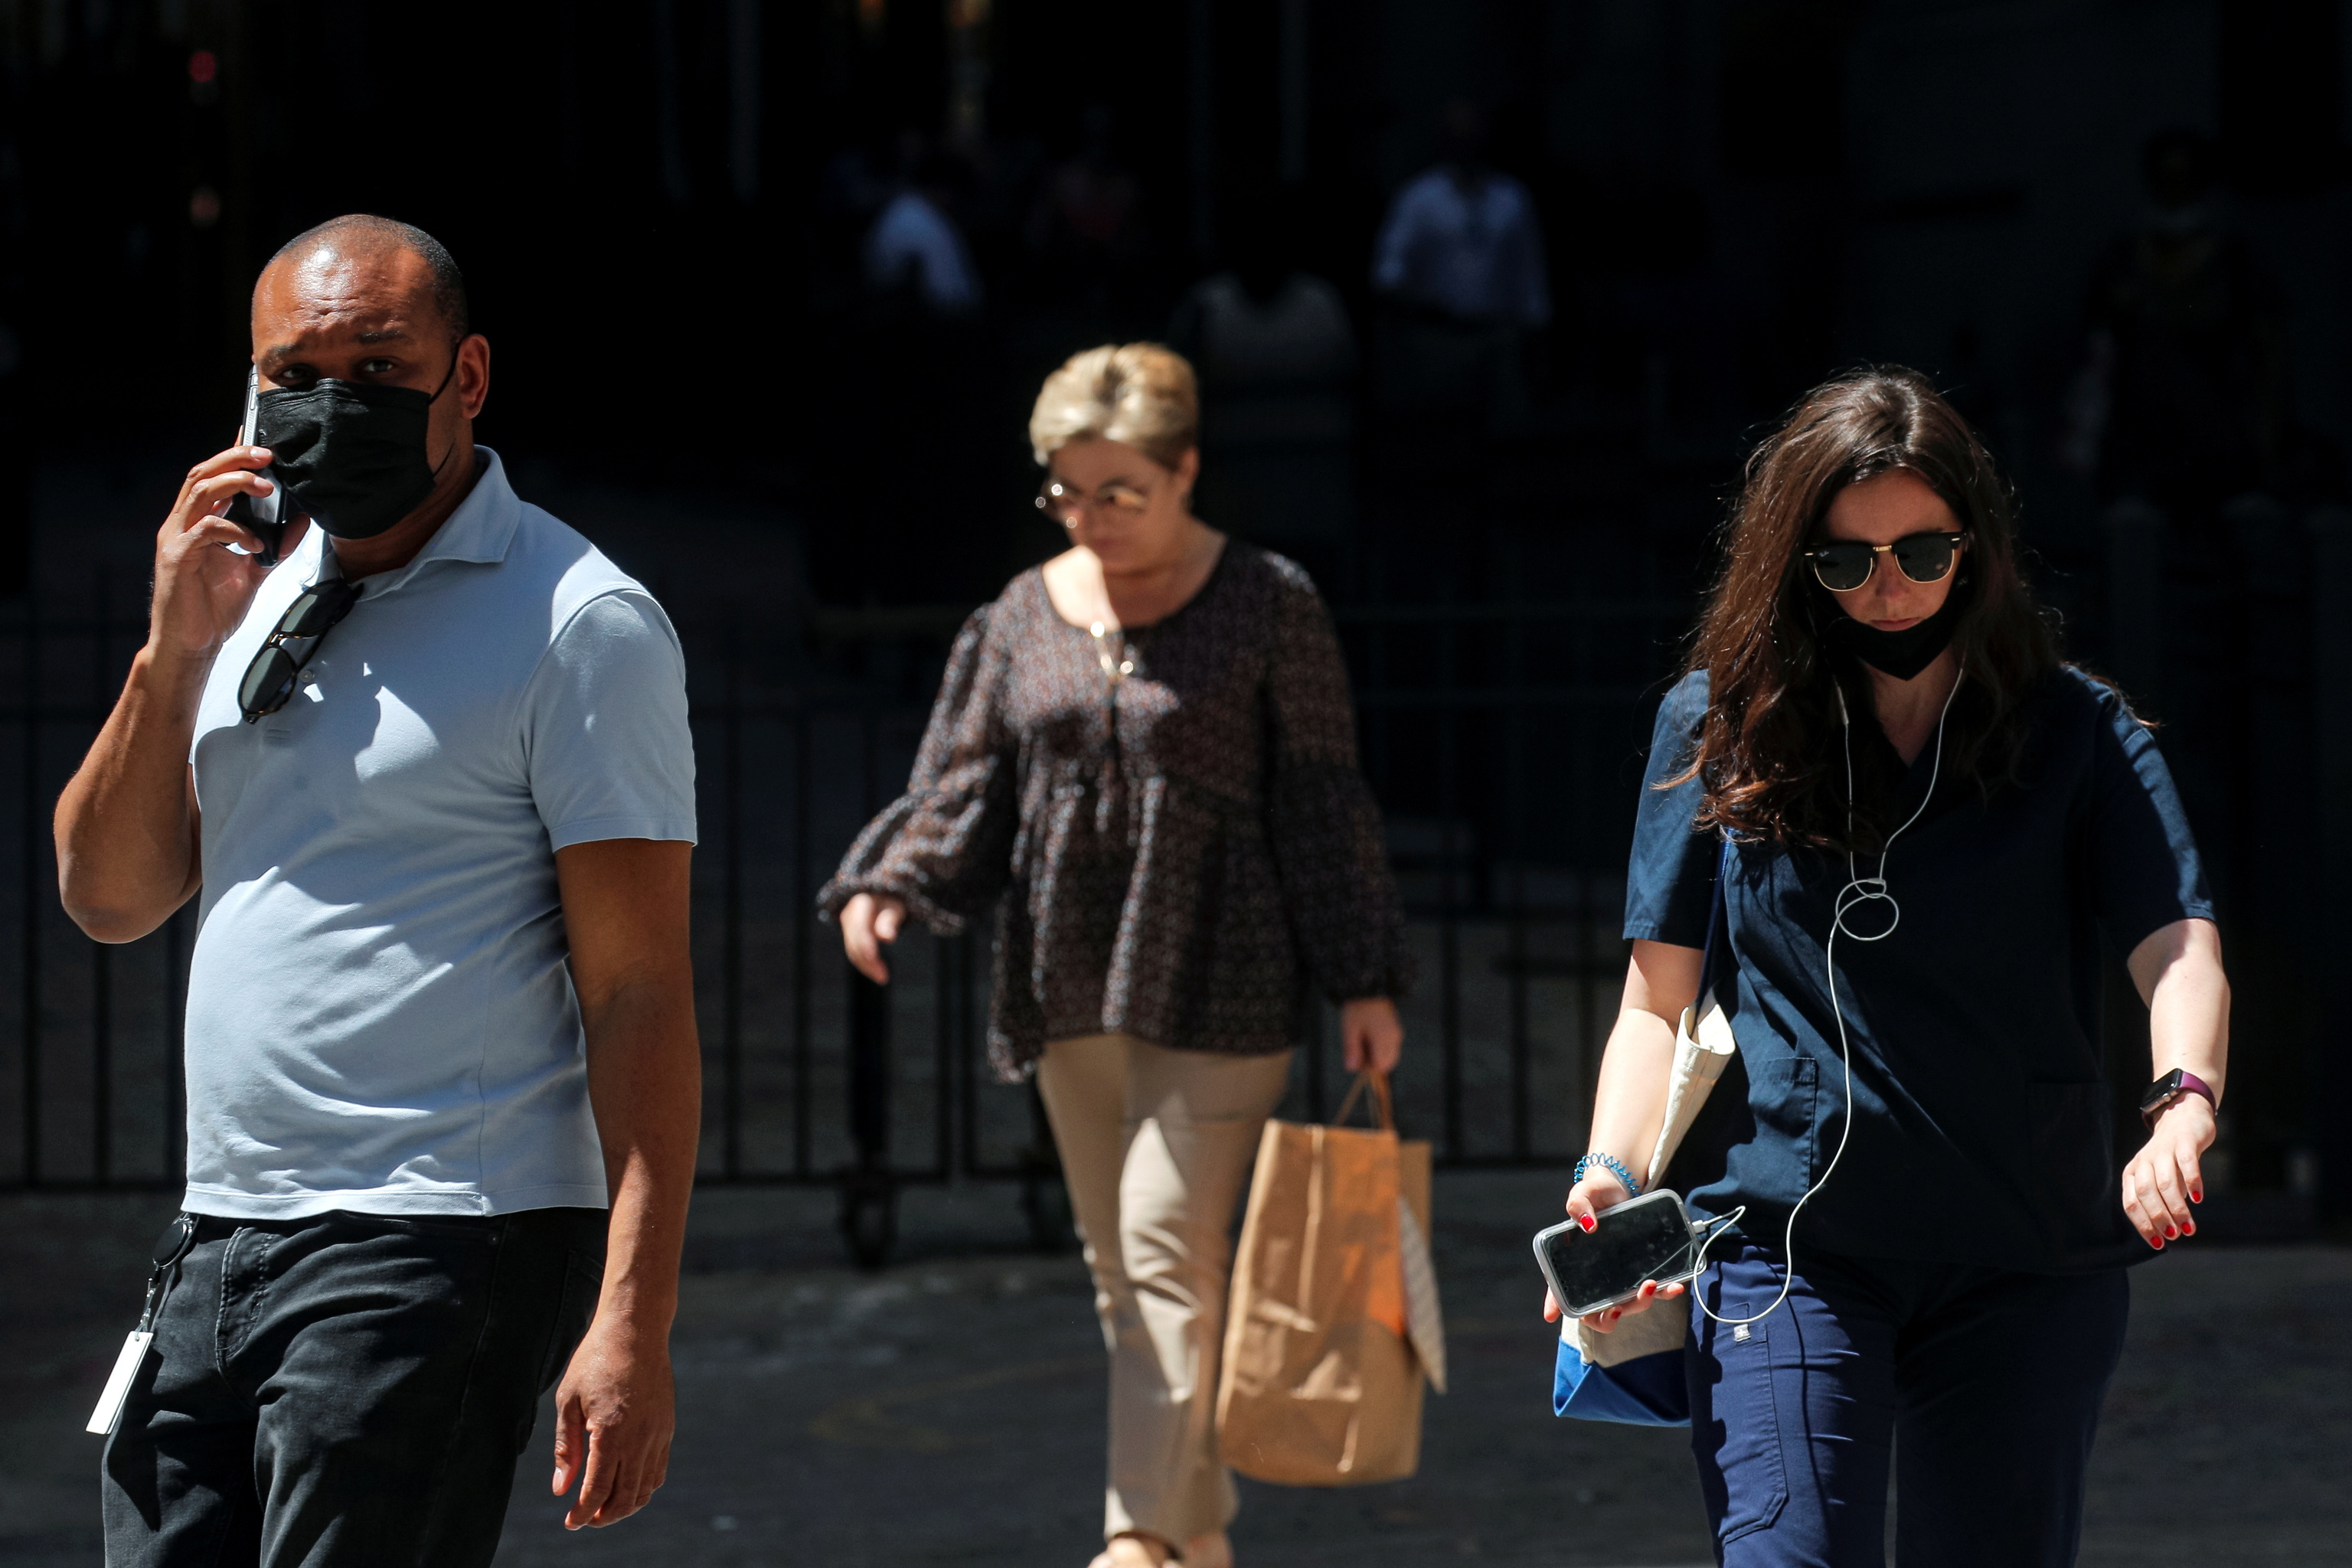 Several people walk down Wall Street (New York), after the relaxation of prevention measures against Covid.